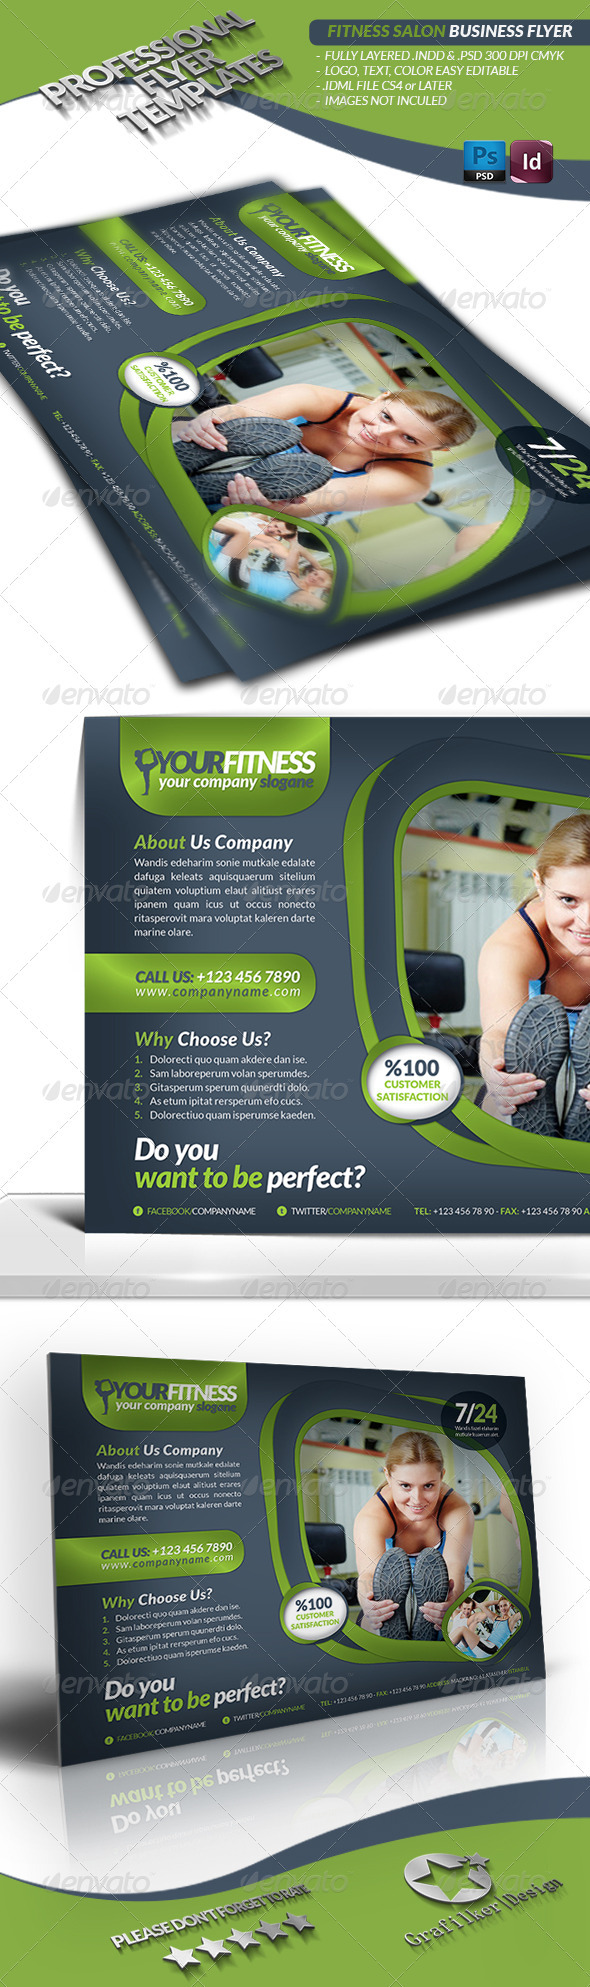 GraphicRiver Fitness Salon Business Flyer 3473384